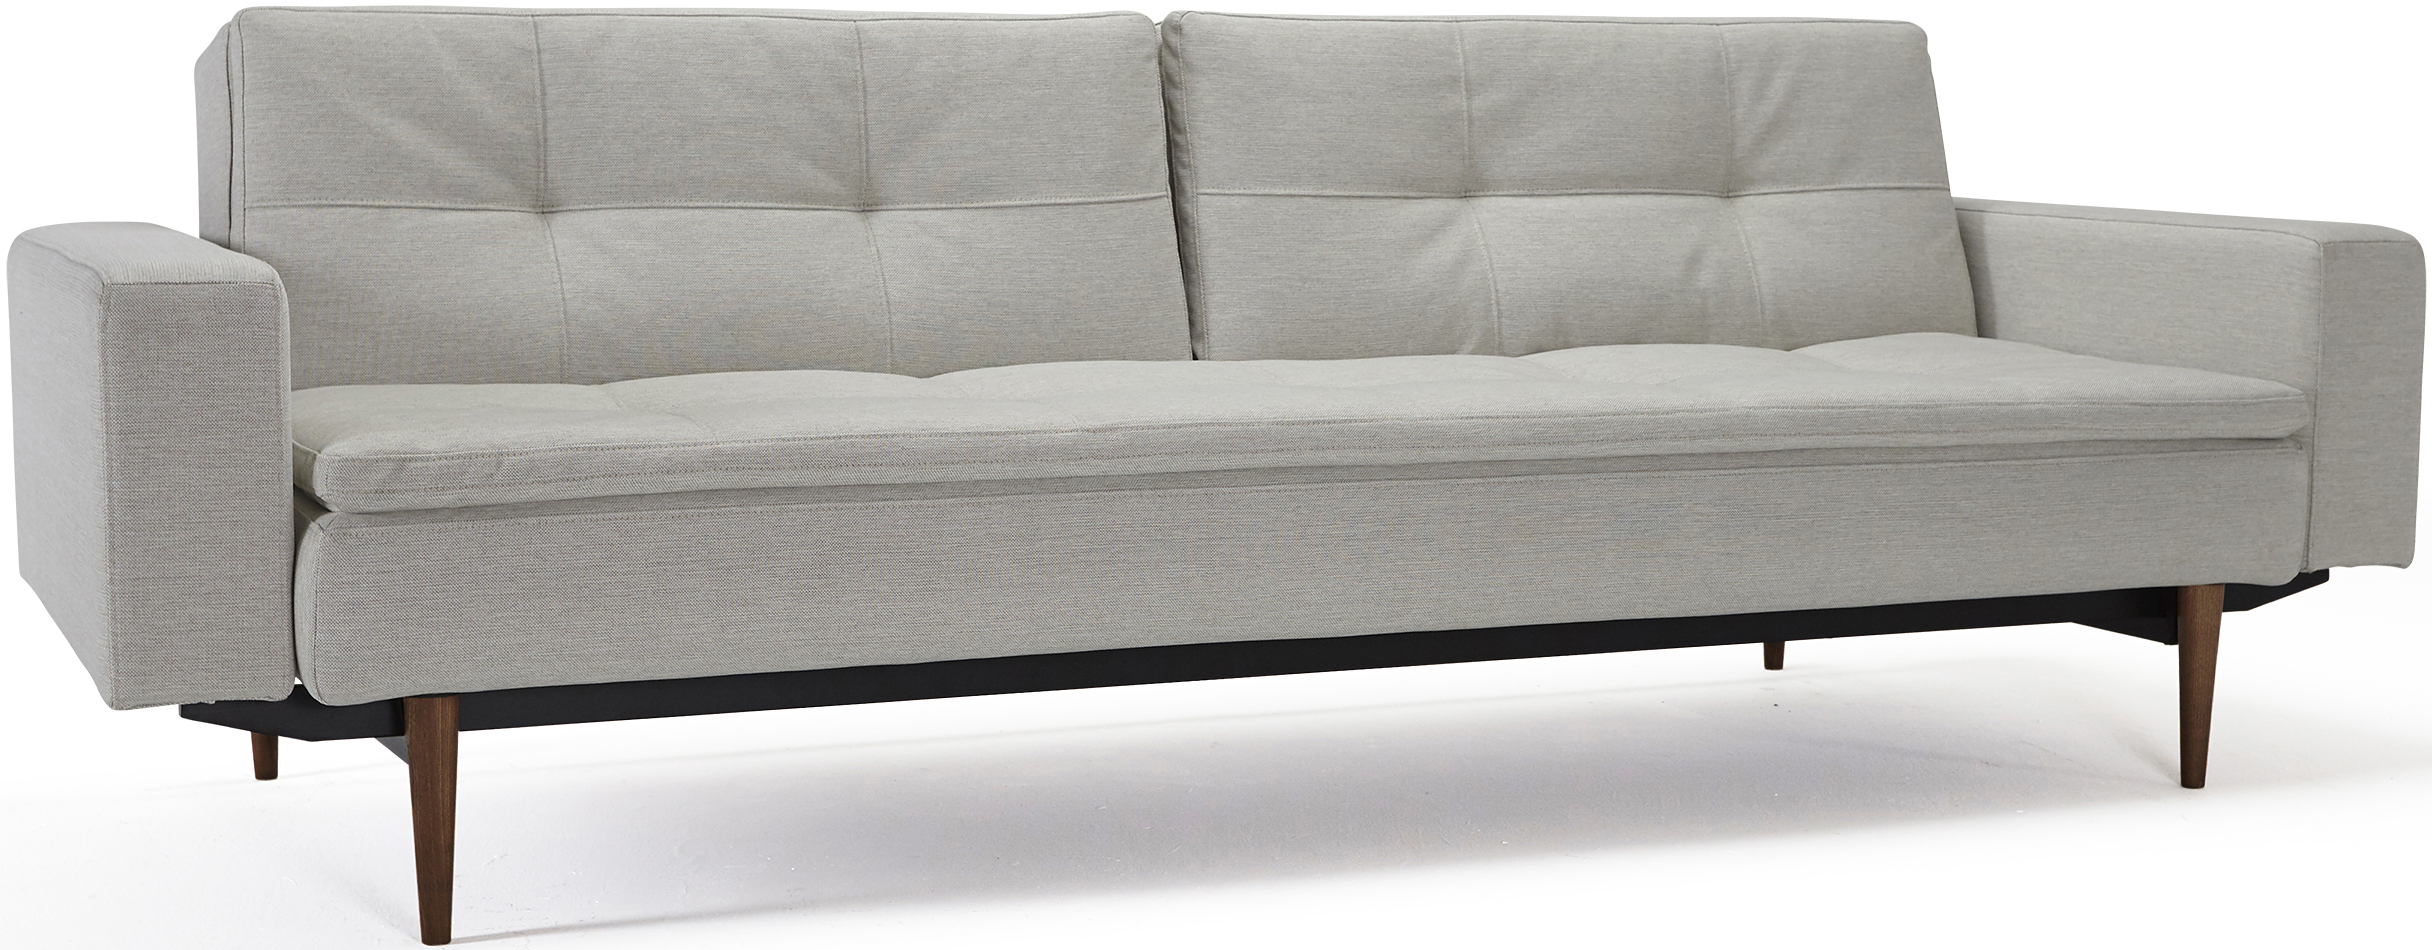 the dublexo sofa with arms